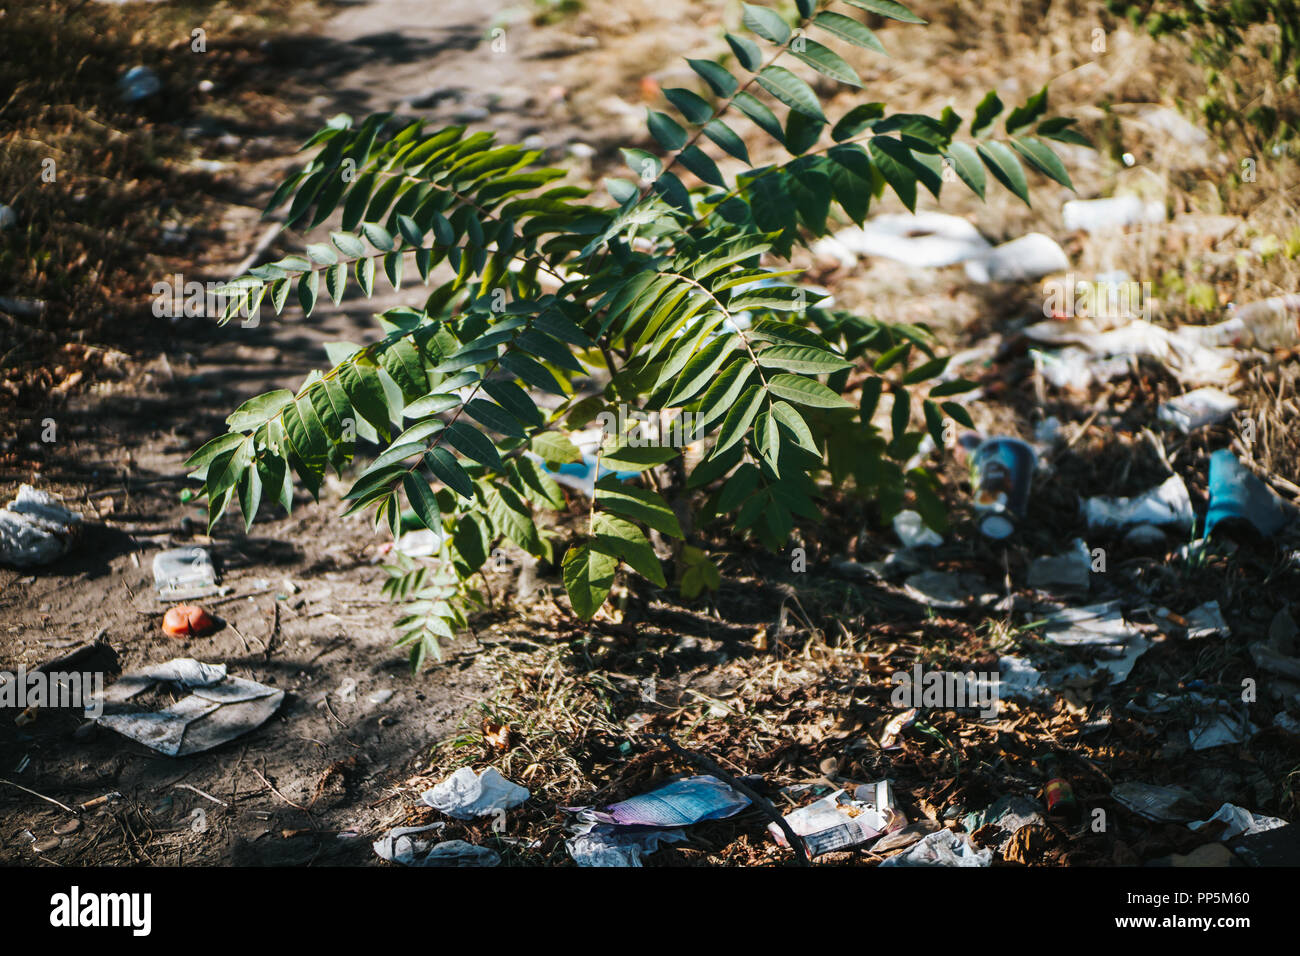 Plant growing in the middle of a path full of plastic garbage Stock Photo